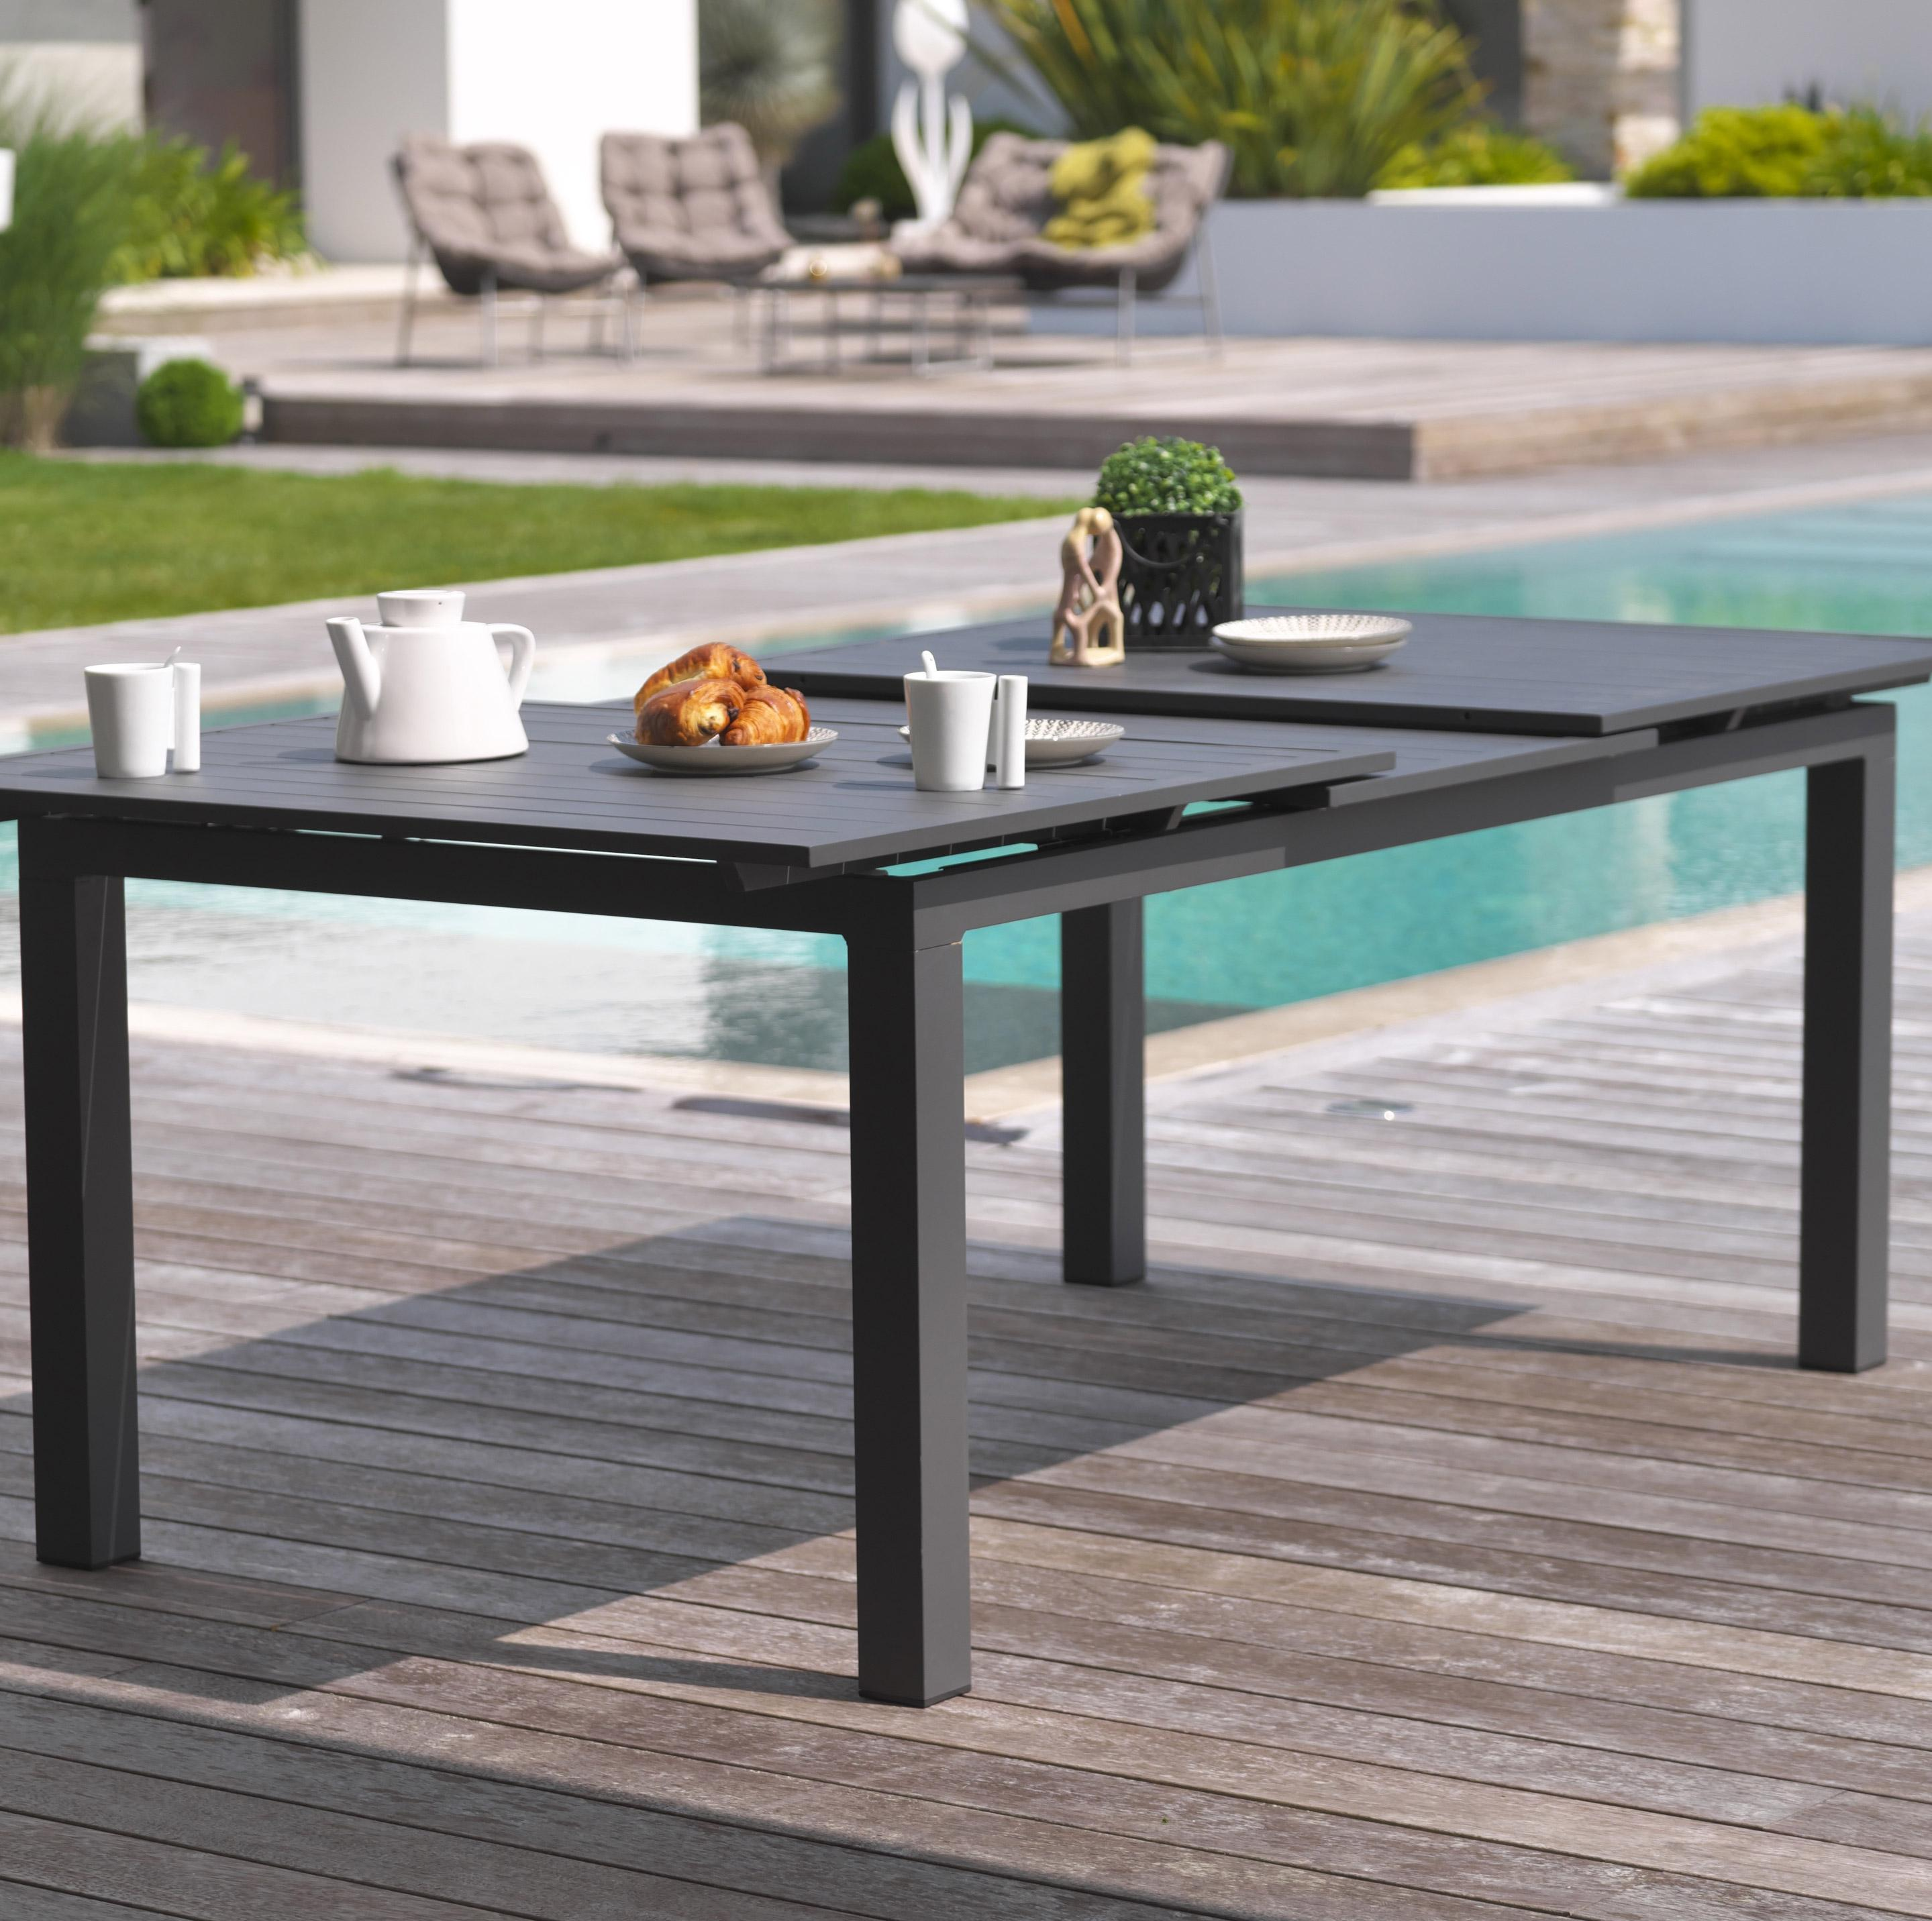 Anthracite Jardin 10 Rectangulaire Table Miami Gris De Repas wZTlkOPXiu